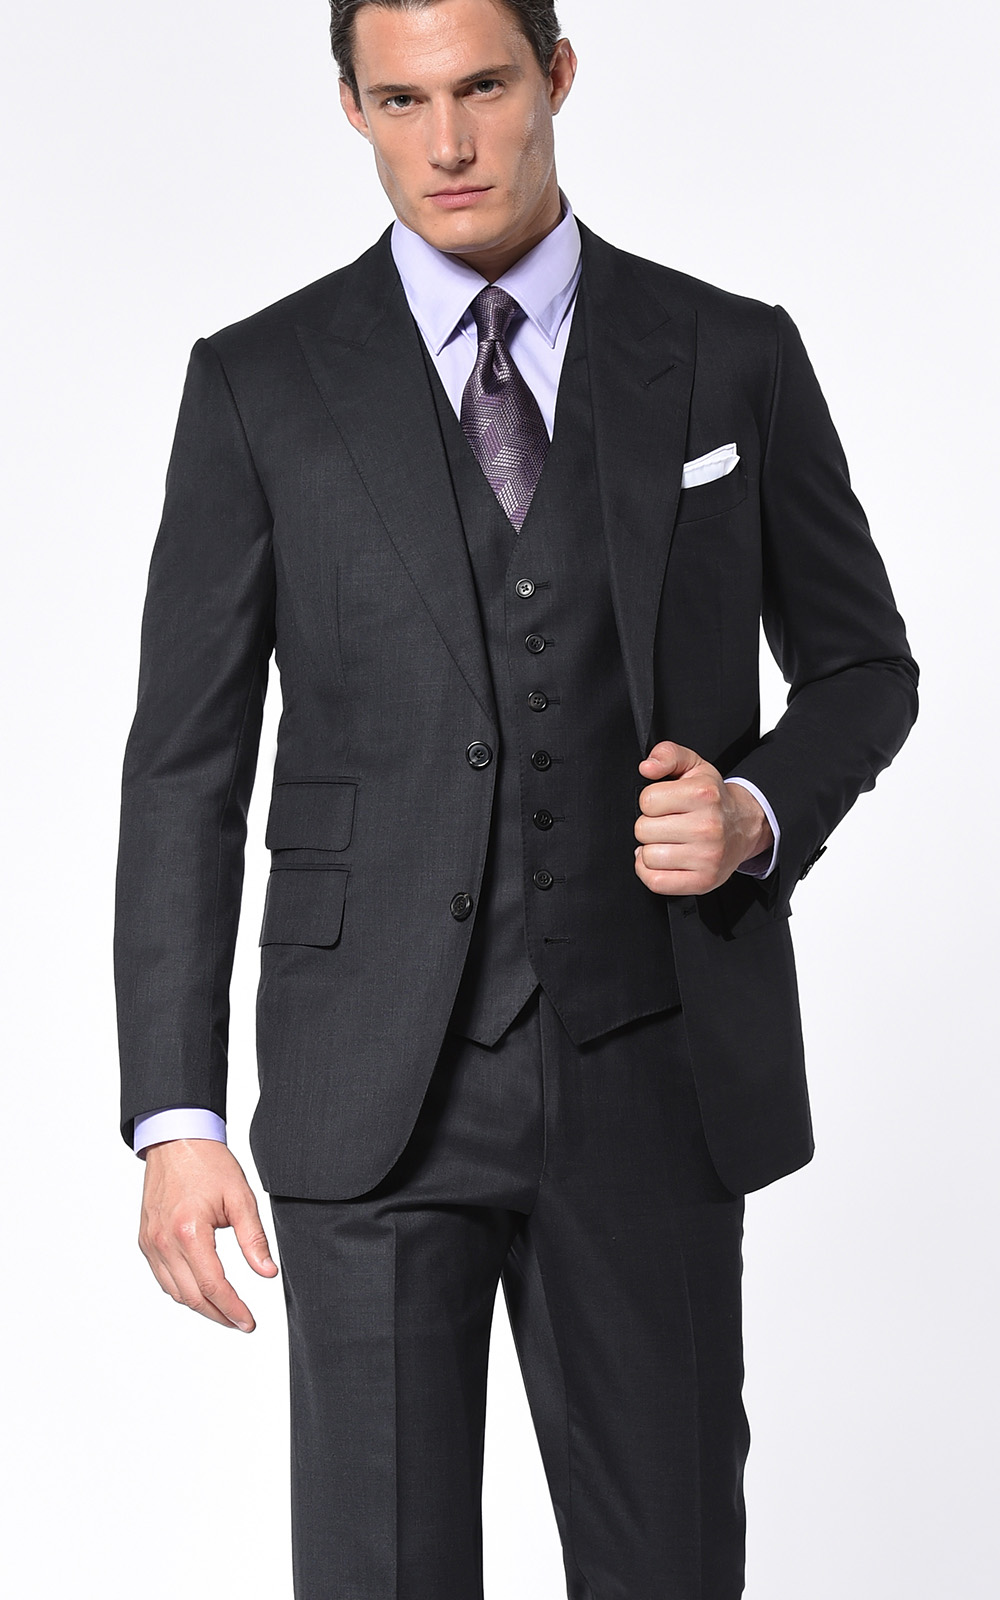 CHARCOAL TWILL CLASSIC 2-BUTTON SUIT